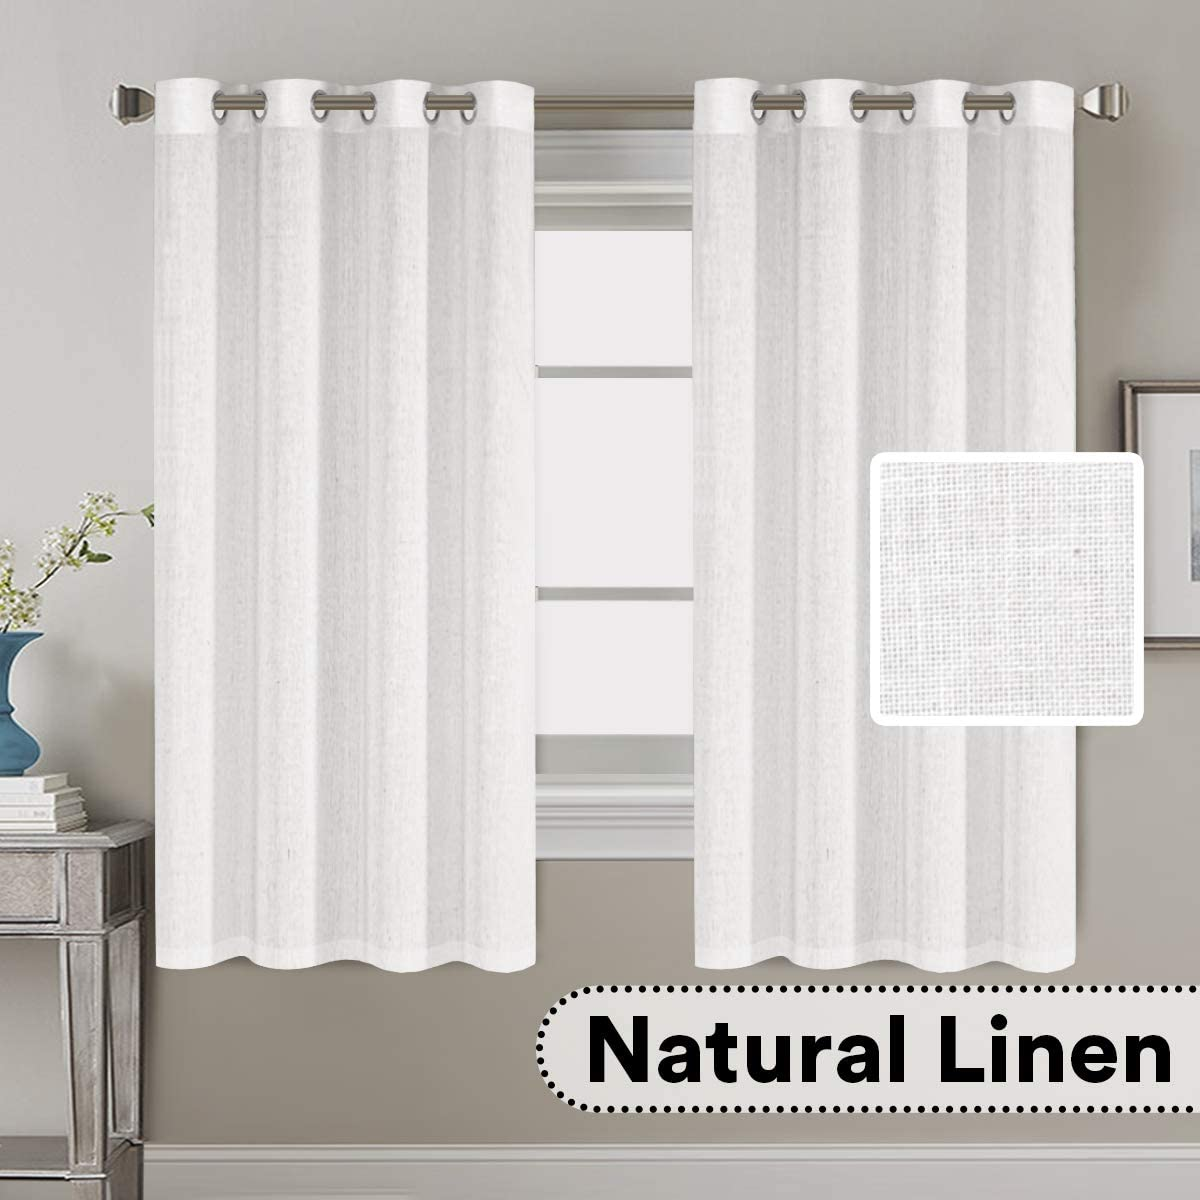 H.VERSAILTEX Living Room Linen Curtains Home Decorative Nickel Grommet Curtains Privacy Added Energy Saving Light Filtering Window Treatments Draperies for Bedroom, White, 2 Panels, 52 x 63 - Inch